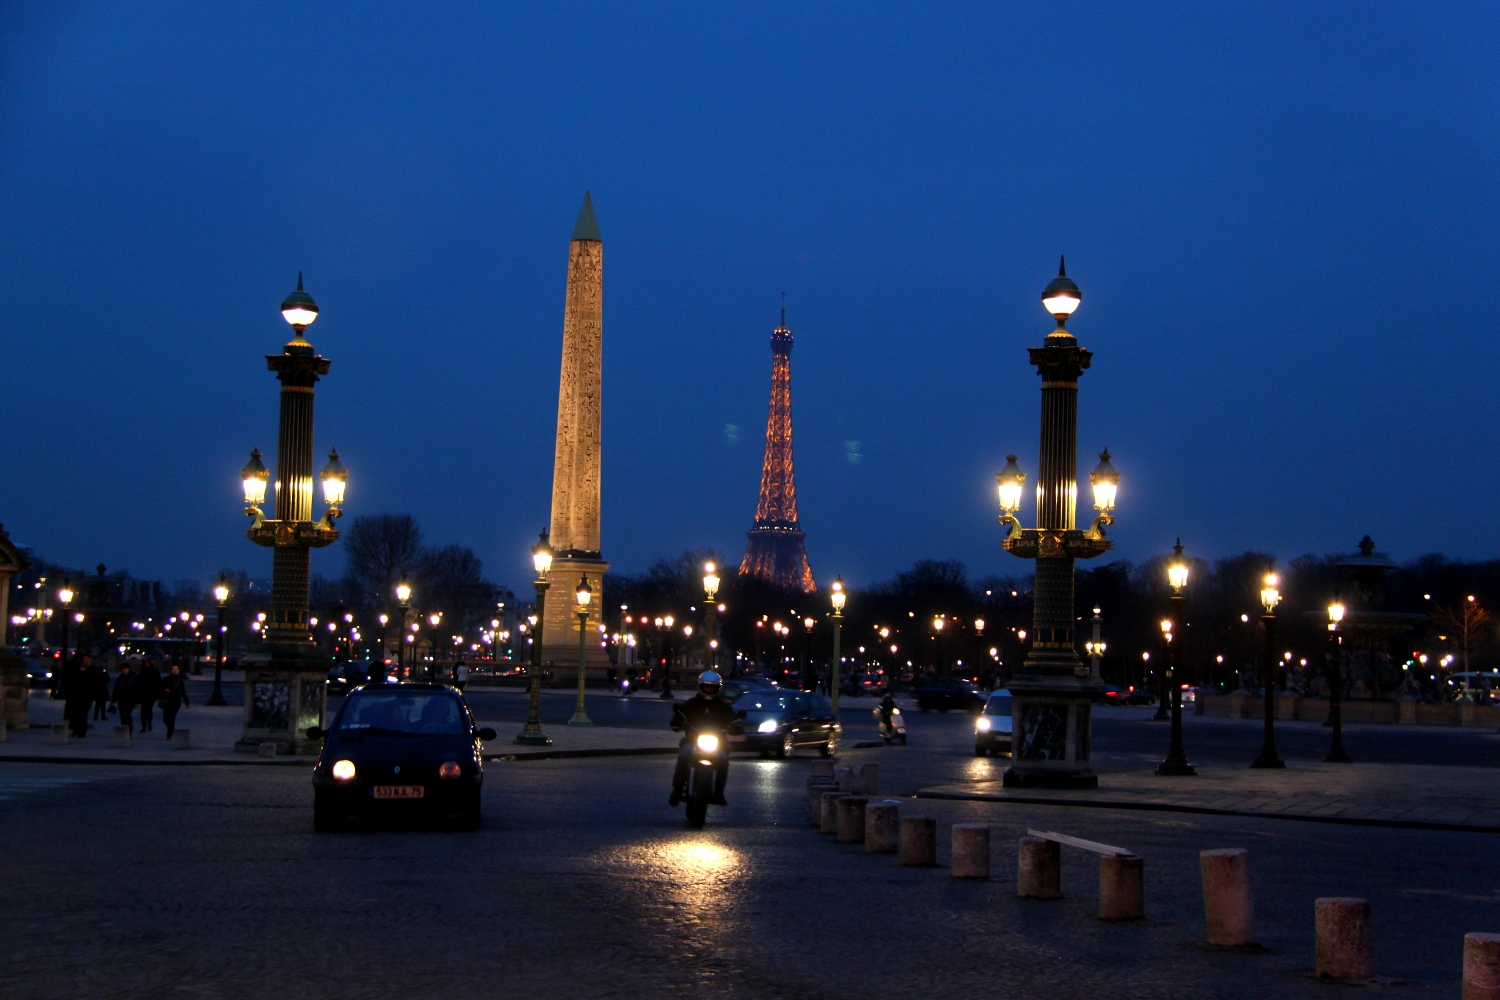 The Luxor Obelisque (Obelisk) in Paris with the Eiffel Tower